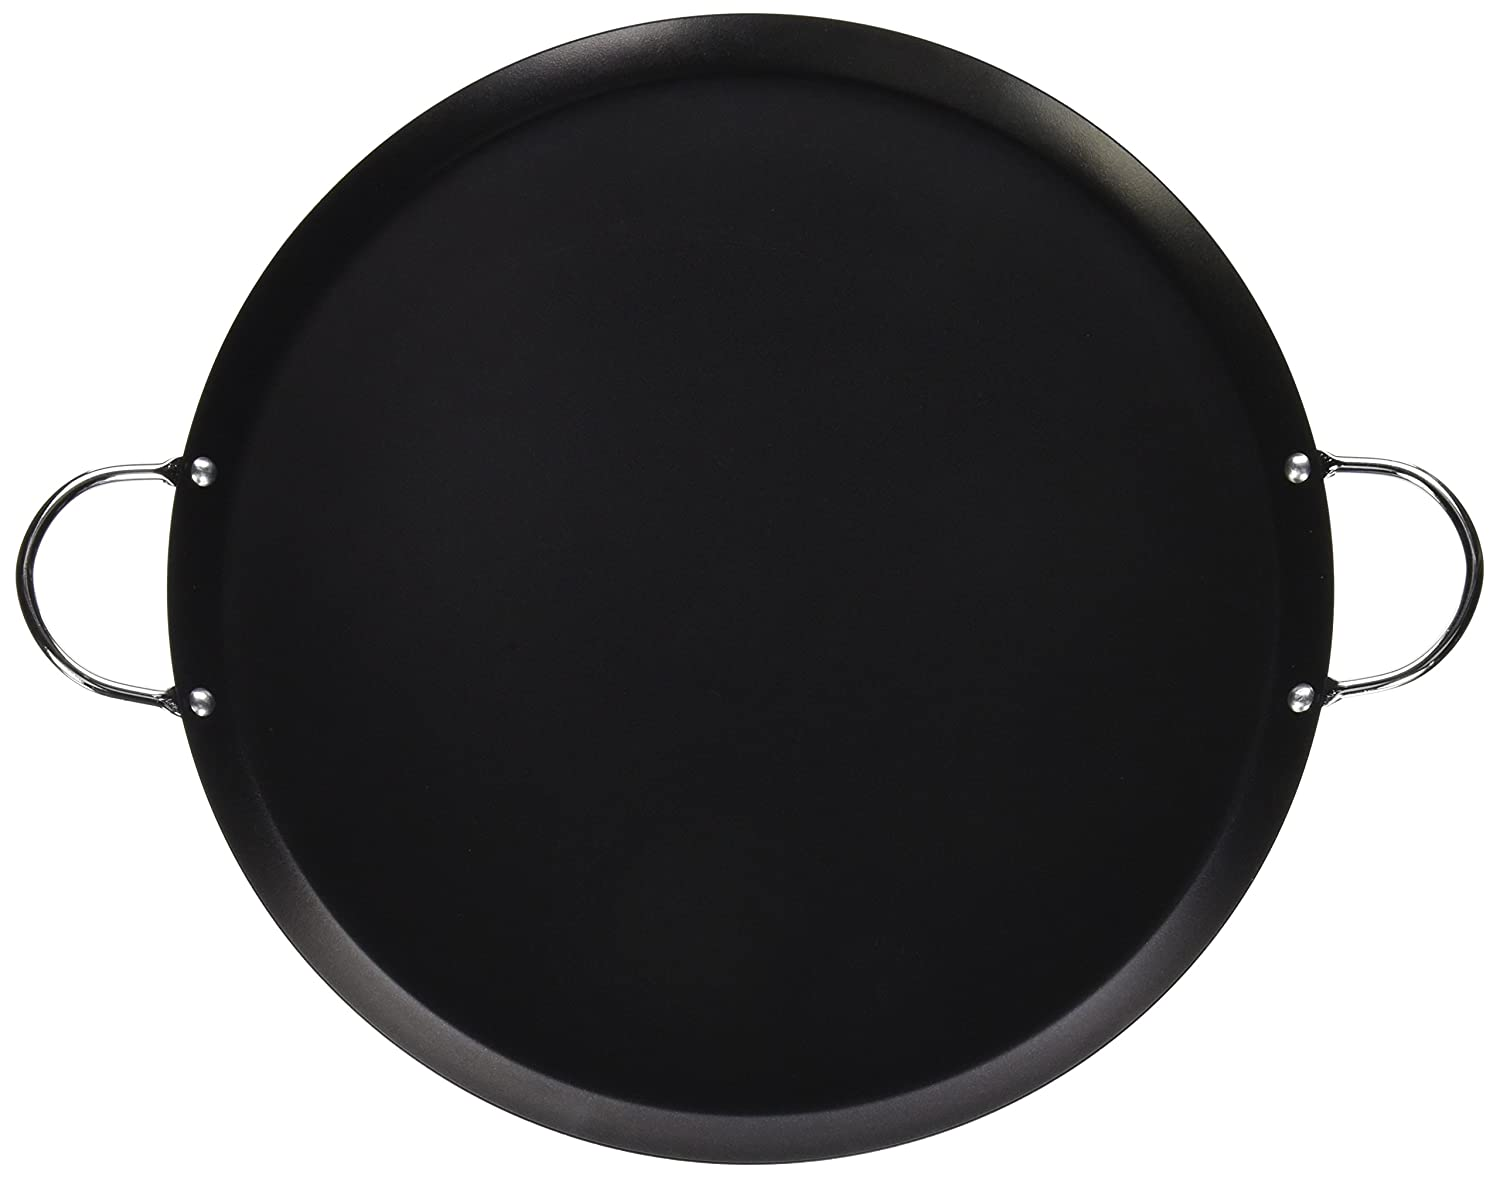 IMUSA USA CAR-52023 Round Large Comal 13.5-Inch, Black